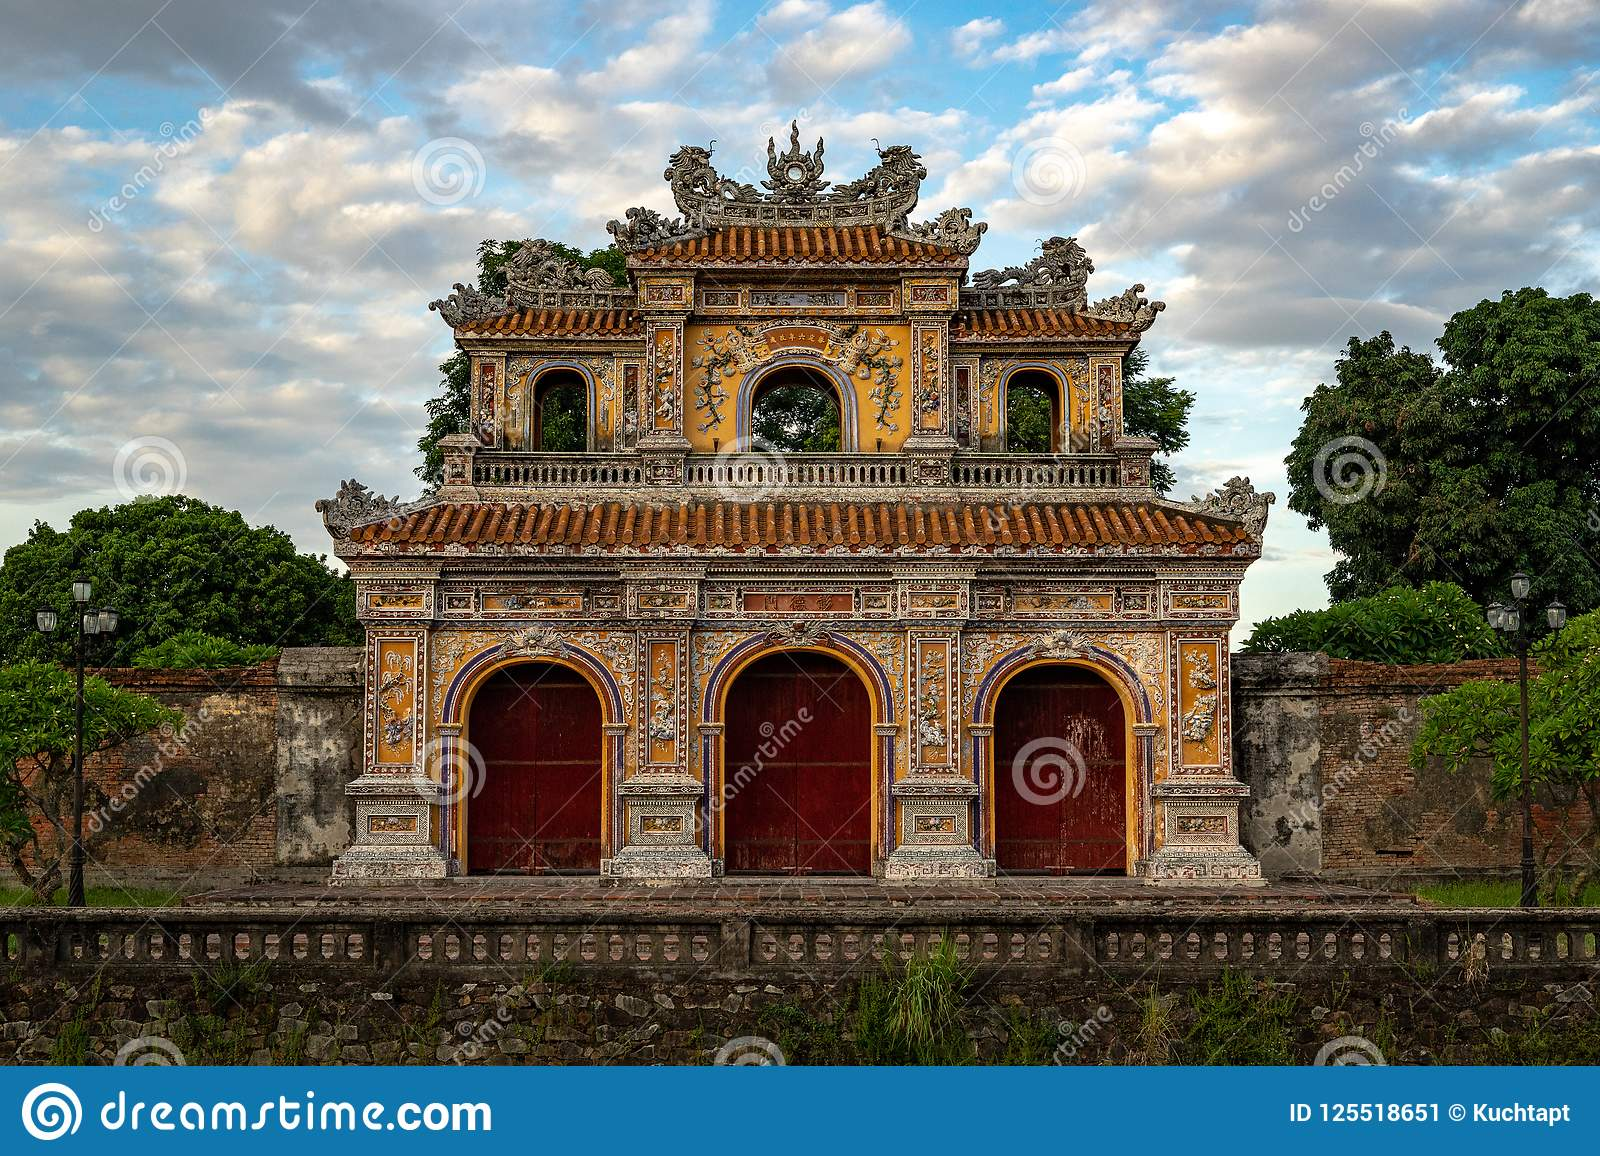 Gate to the Imperial City, Hue